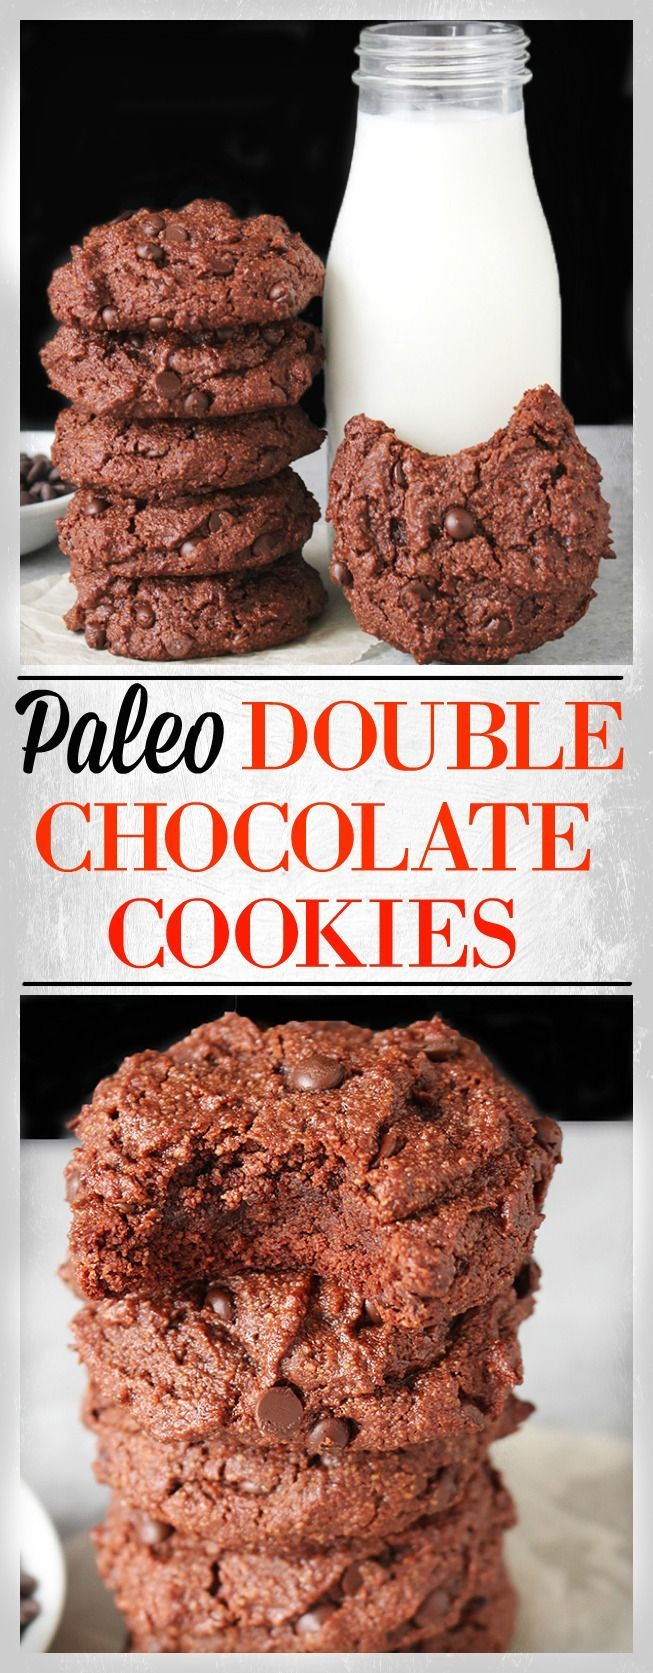 Double Chocolate Cookies- easy, rich, fudgy, and so delicious! Gluten free, dairy free, and naturally sweetened. |  via @realfoodwithjessica